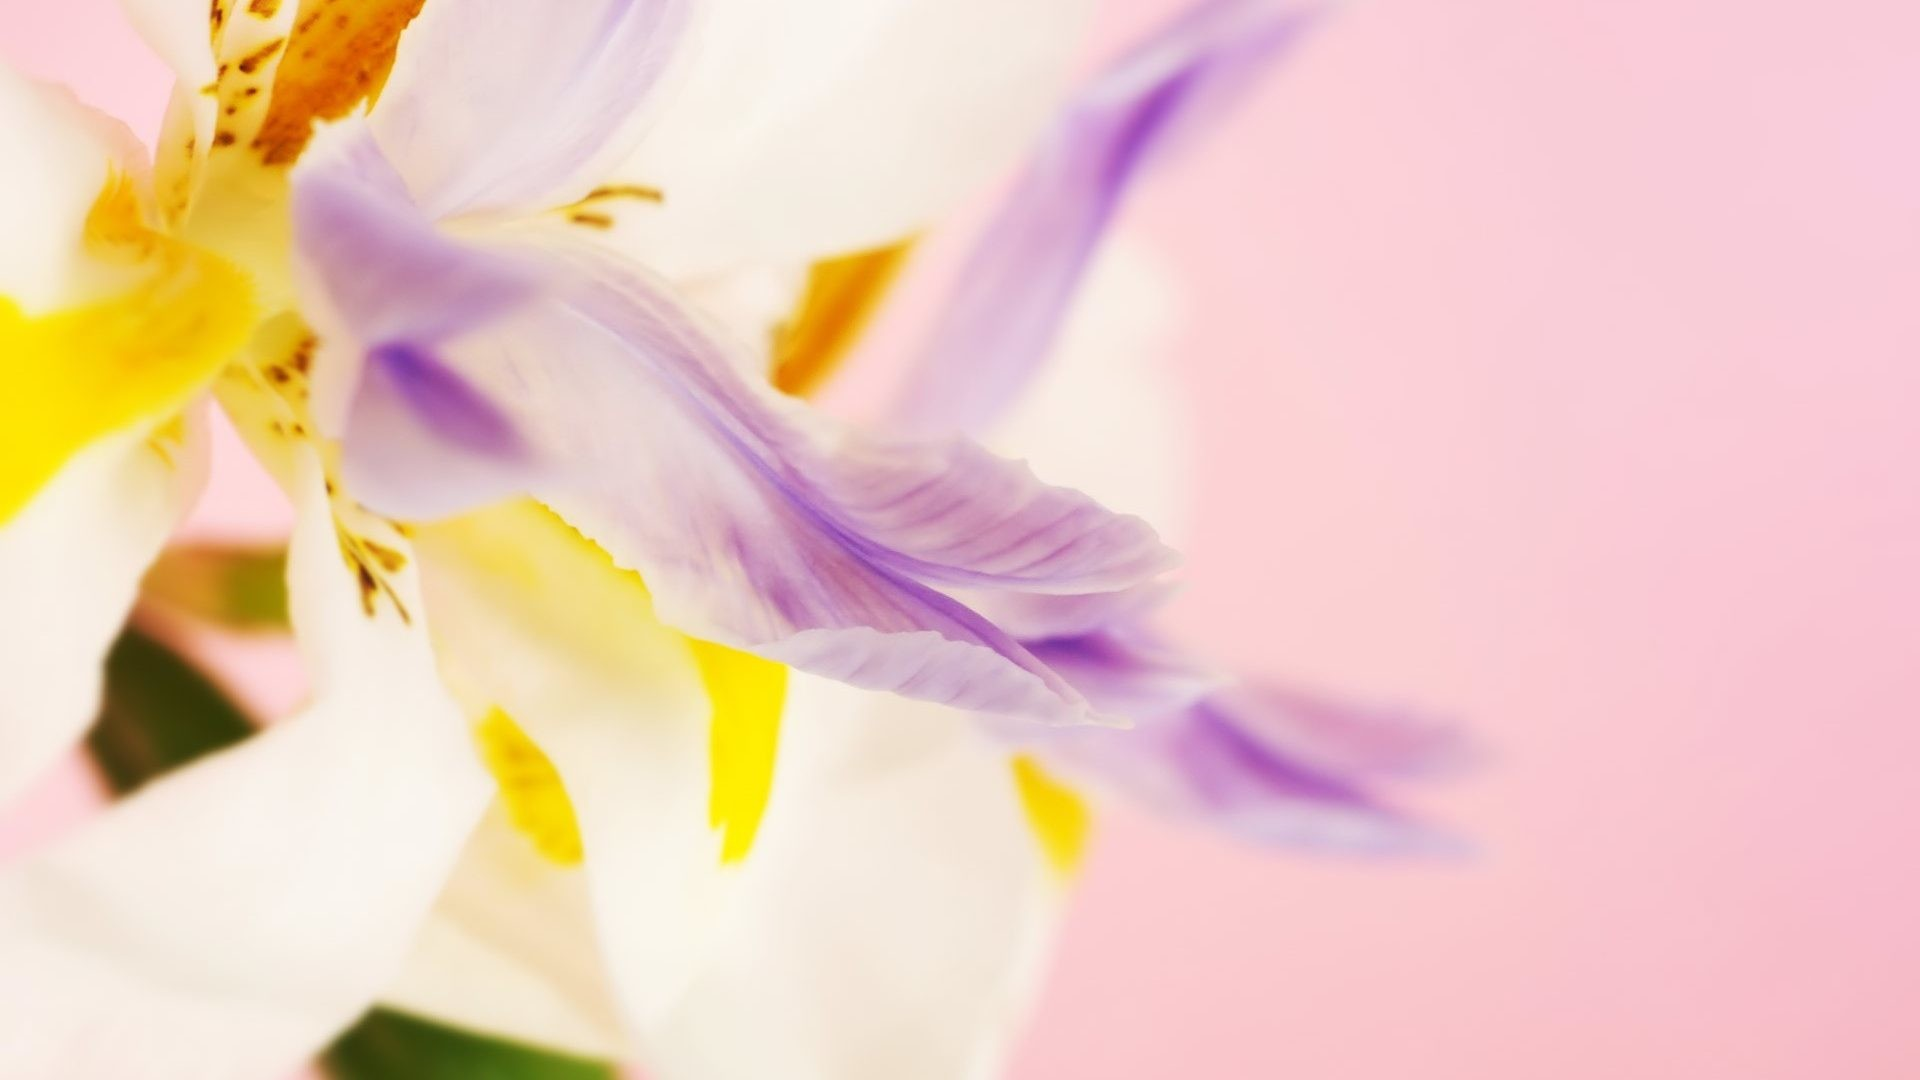 Purple and white wallpaper 76 images 1920x1080 pastel tag colors soft yellow pink pastels petals pastel purple white flower wallpaper ipad for mightylinksfo